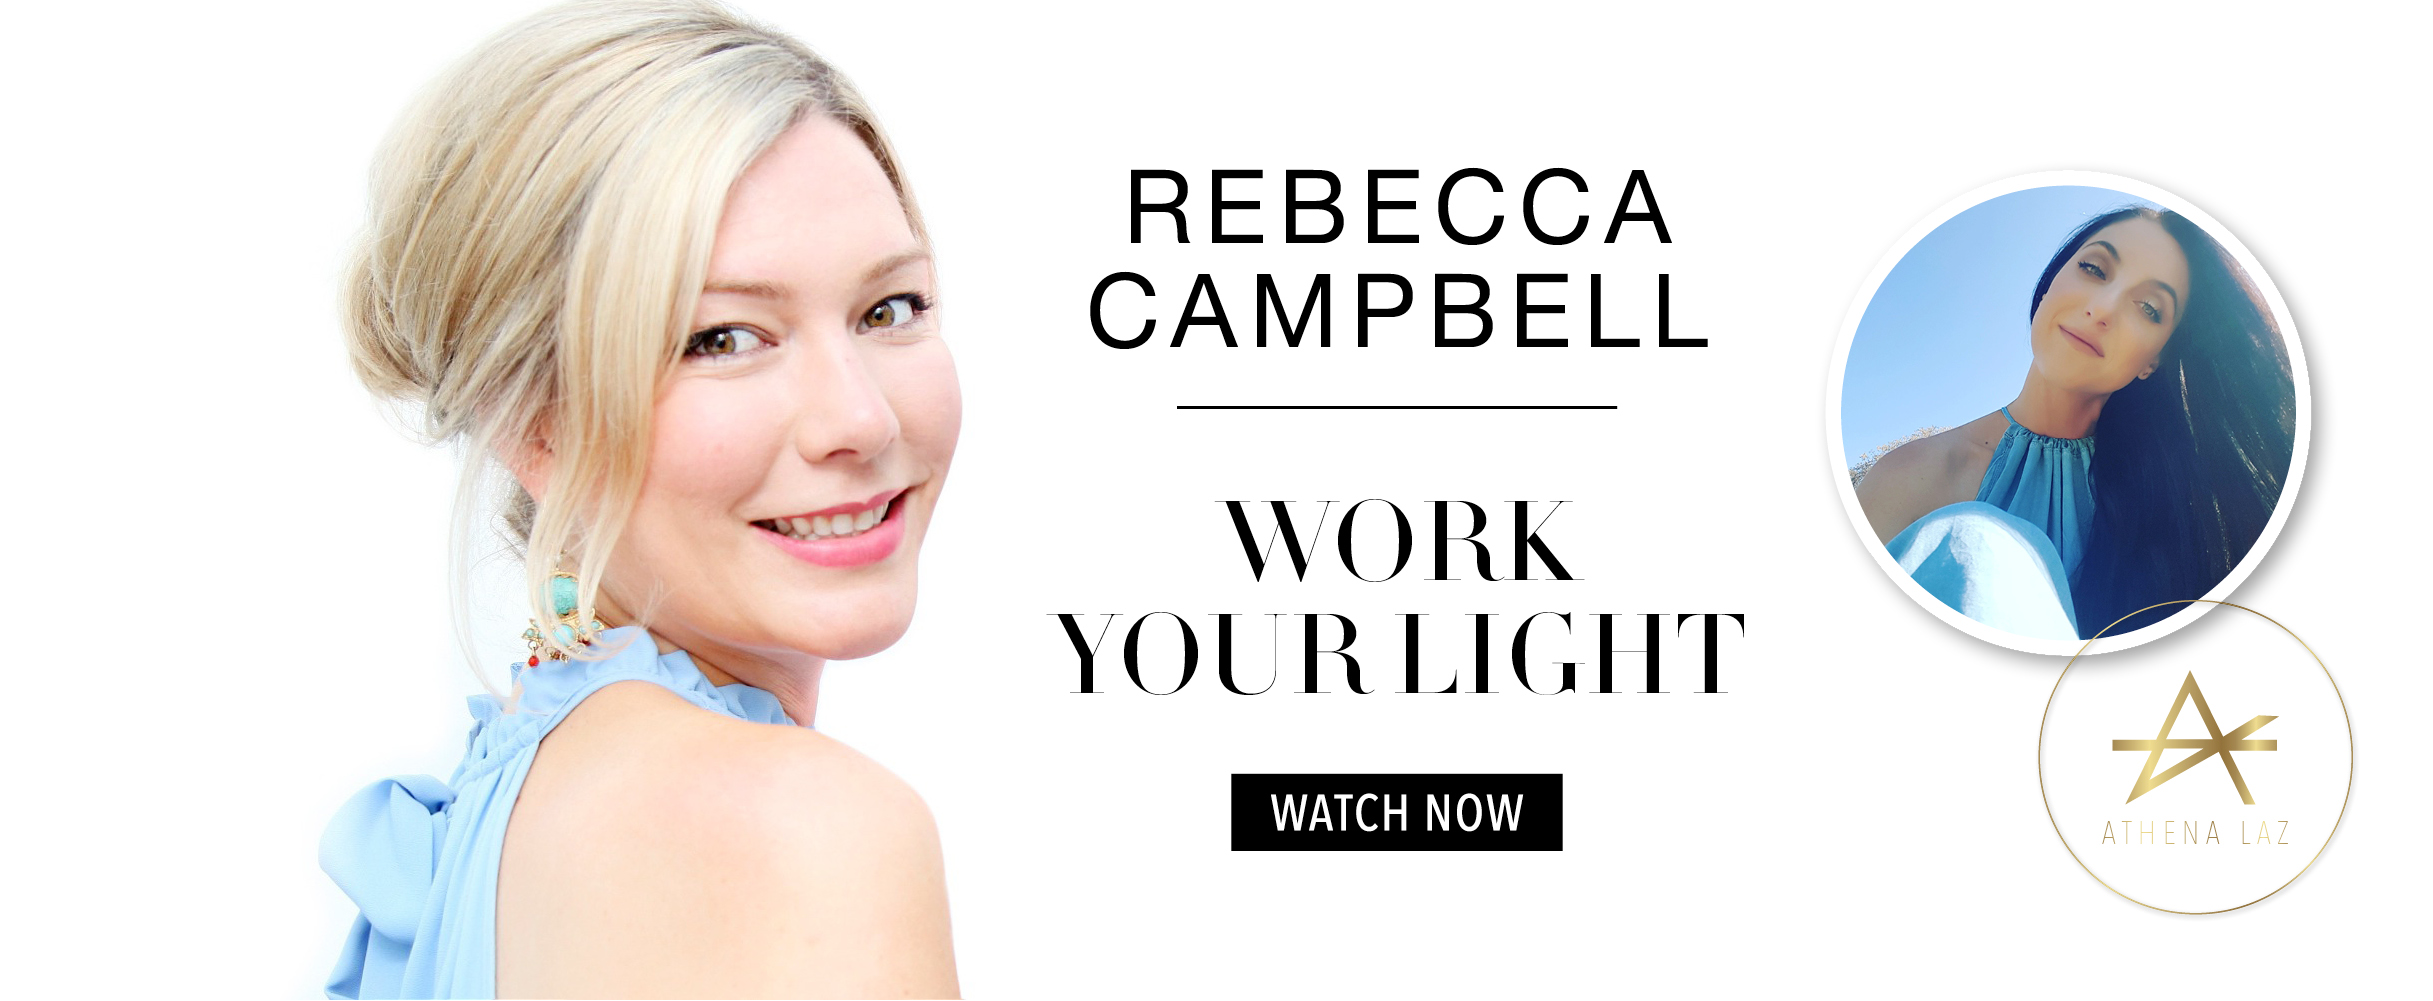 Athena Laz interviews Rebecca Campbell on Rise Sister Rise and how to work your light